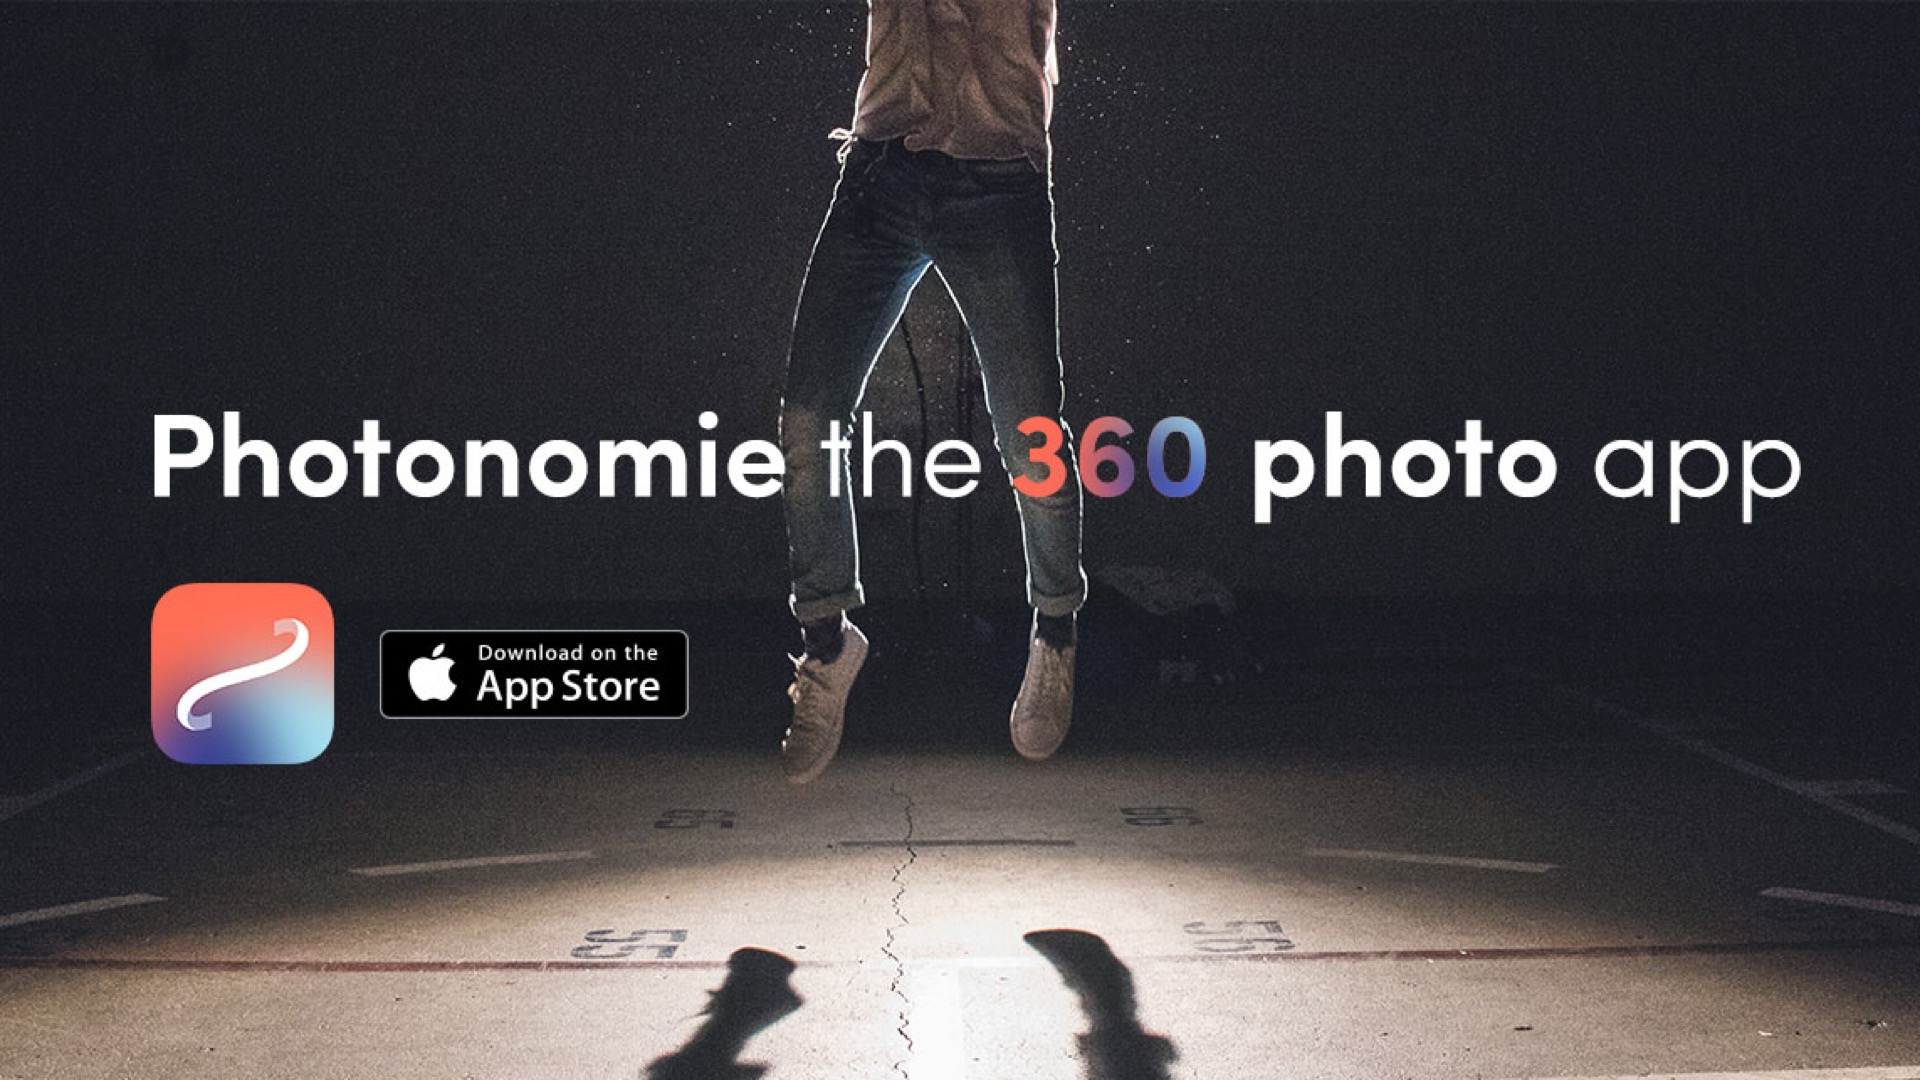 REVIEW: Photonomie - 360 Photo - Immersive Panorama (iOS)